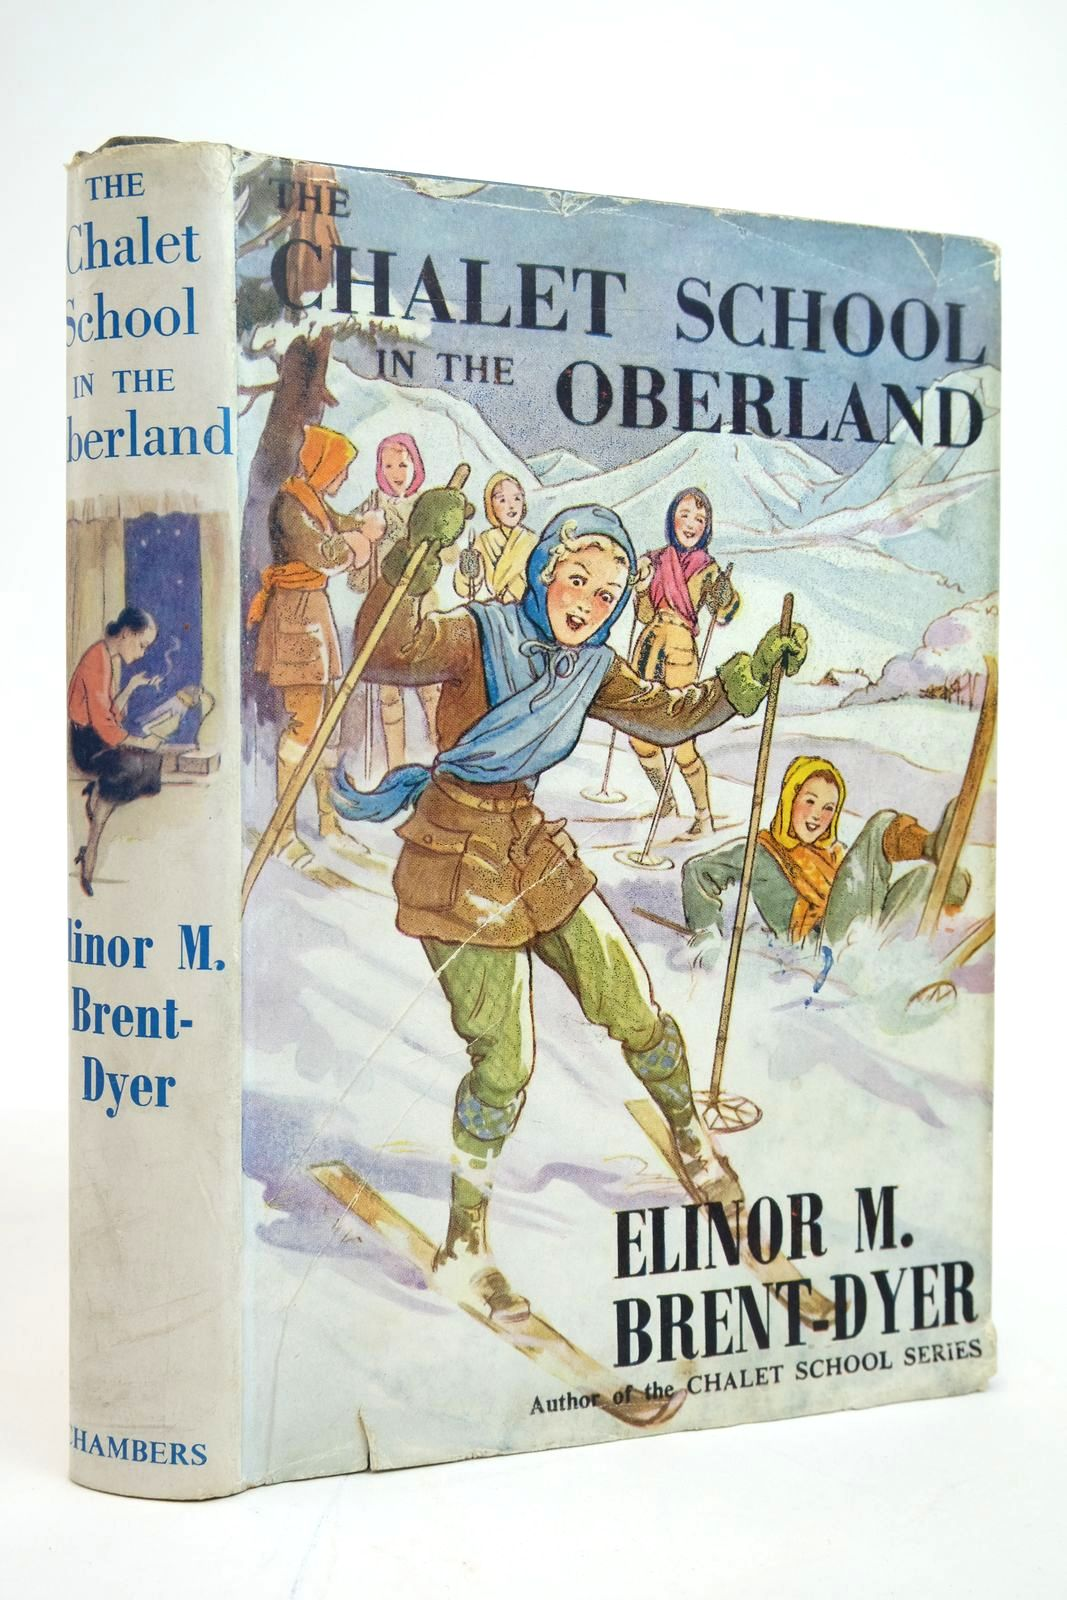 Photo of THE CHALET SCHOOL IN THE OBERLAND written by Brent-Dyer, Elinor M. illustrated by Brisley, Nina K. published by W. & R. Chambers Limited (STOCK CODE: 2135219)  for sale by Stella & Rose's Books